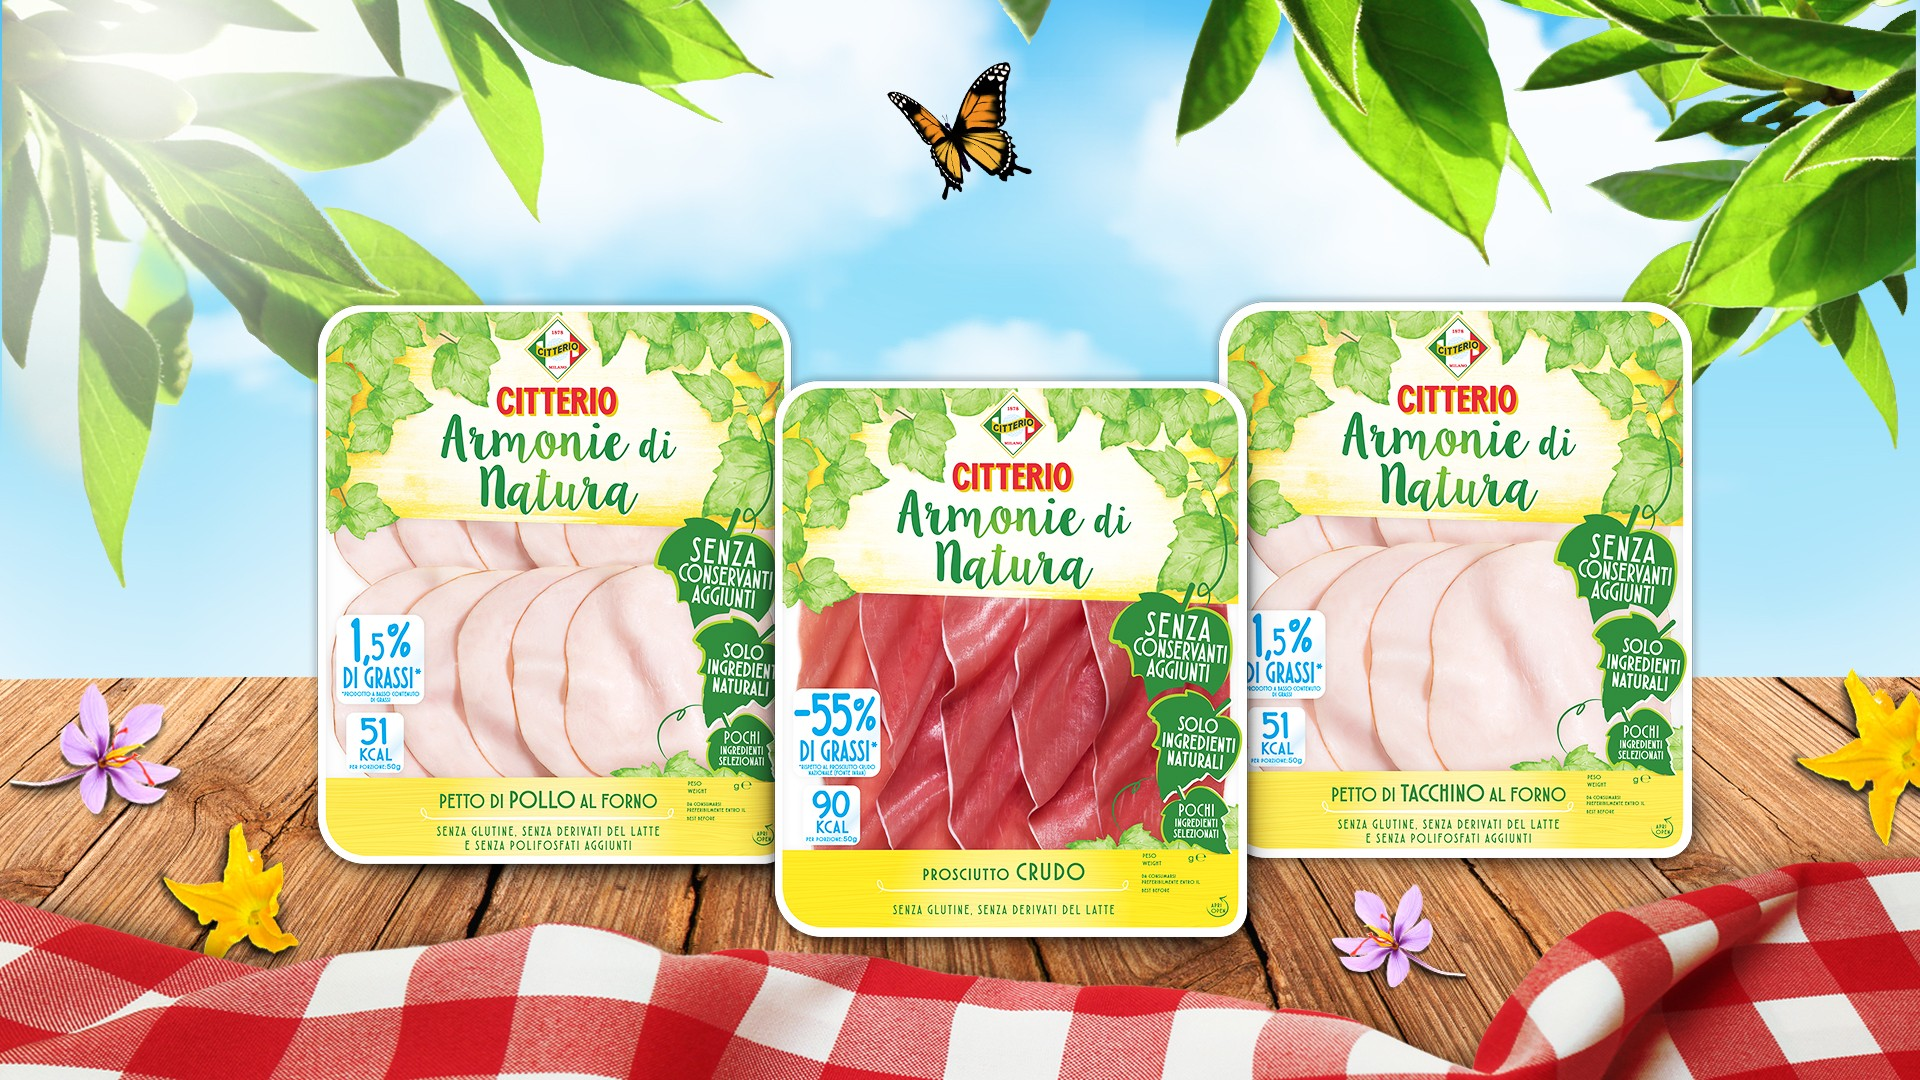 ARMONIE DI NATURA: THE GENUINE TASTE OF CHARCUTERIE IS WITHOUT PRESERVATIVES